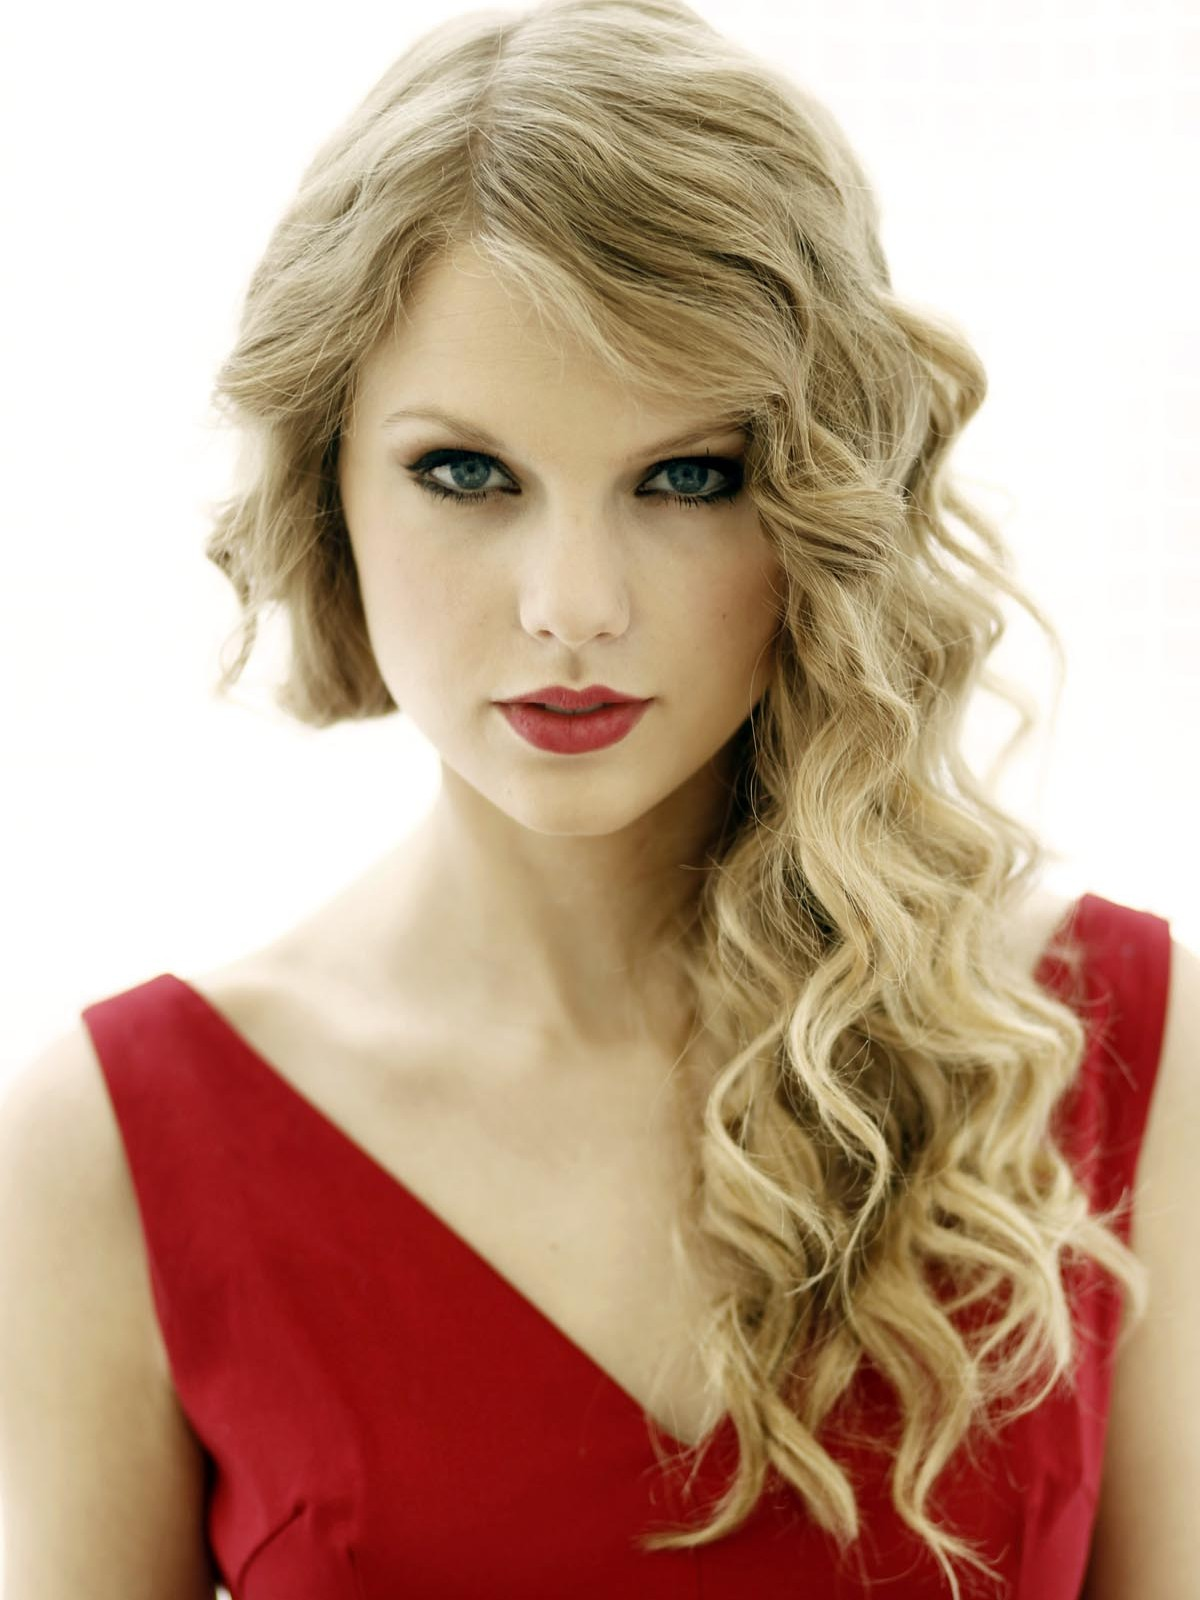 Download High quality Taylor Swift wallpaper / Celebrities Female / 1200x1600